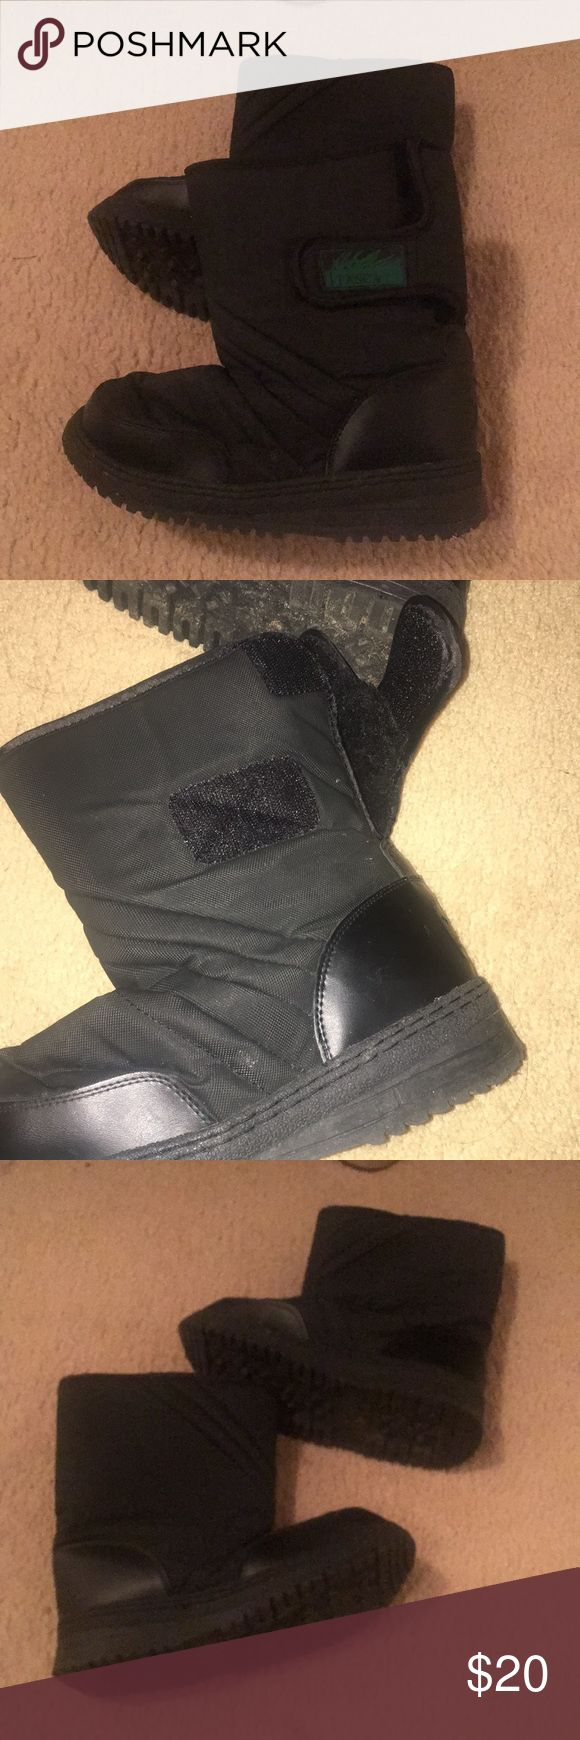 Kids snow boots Worn a handful of times. Still awesome. Black with green detail. Black fur inside. Velcro closure. Very easy to wear. Make an offer Shoes Rain & Snow Boots